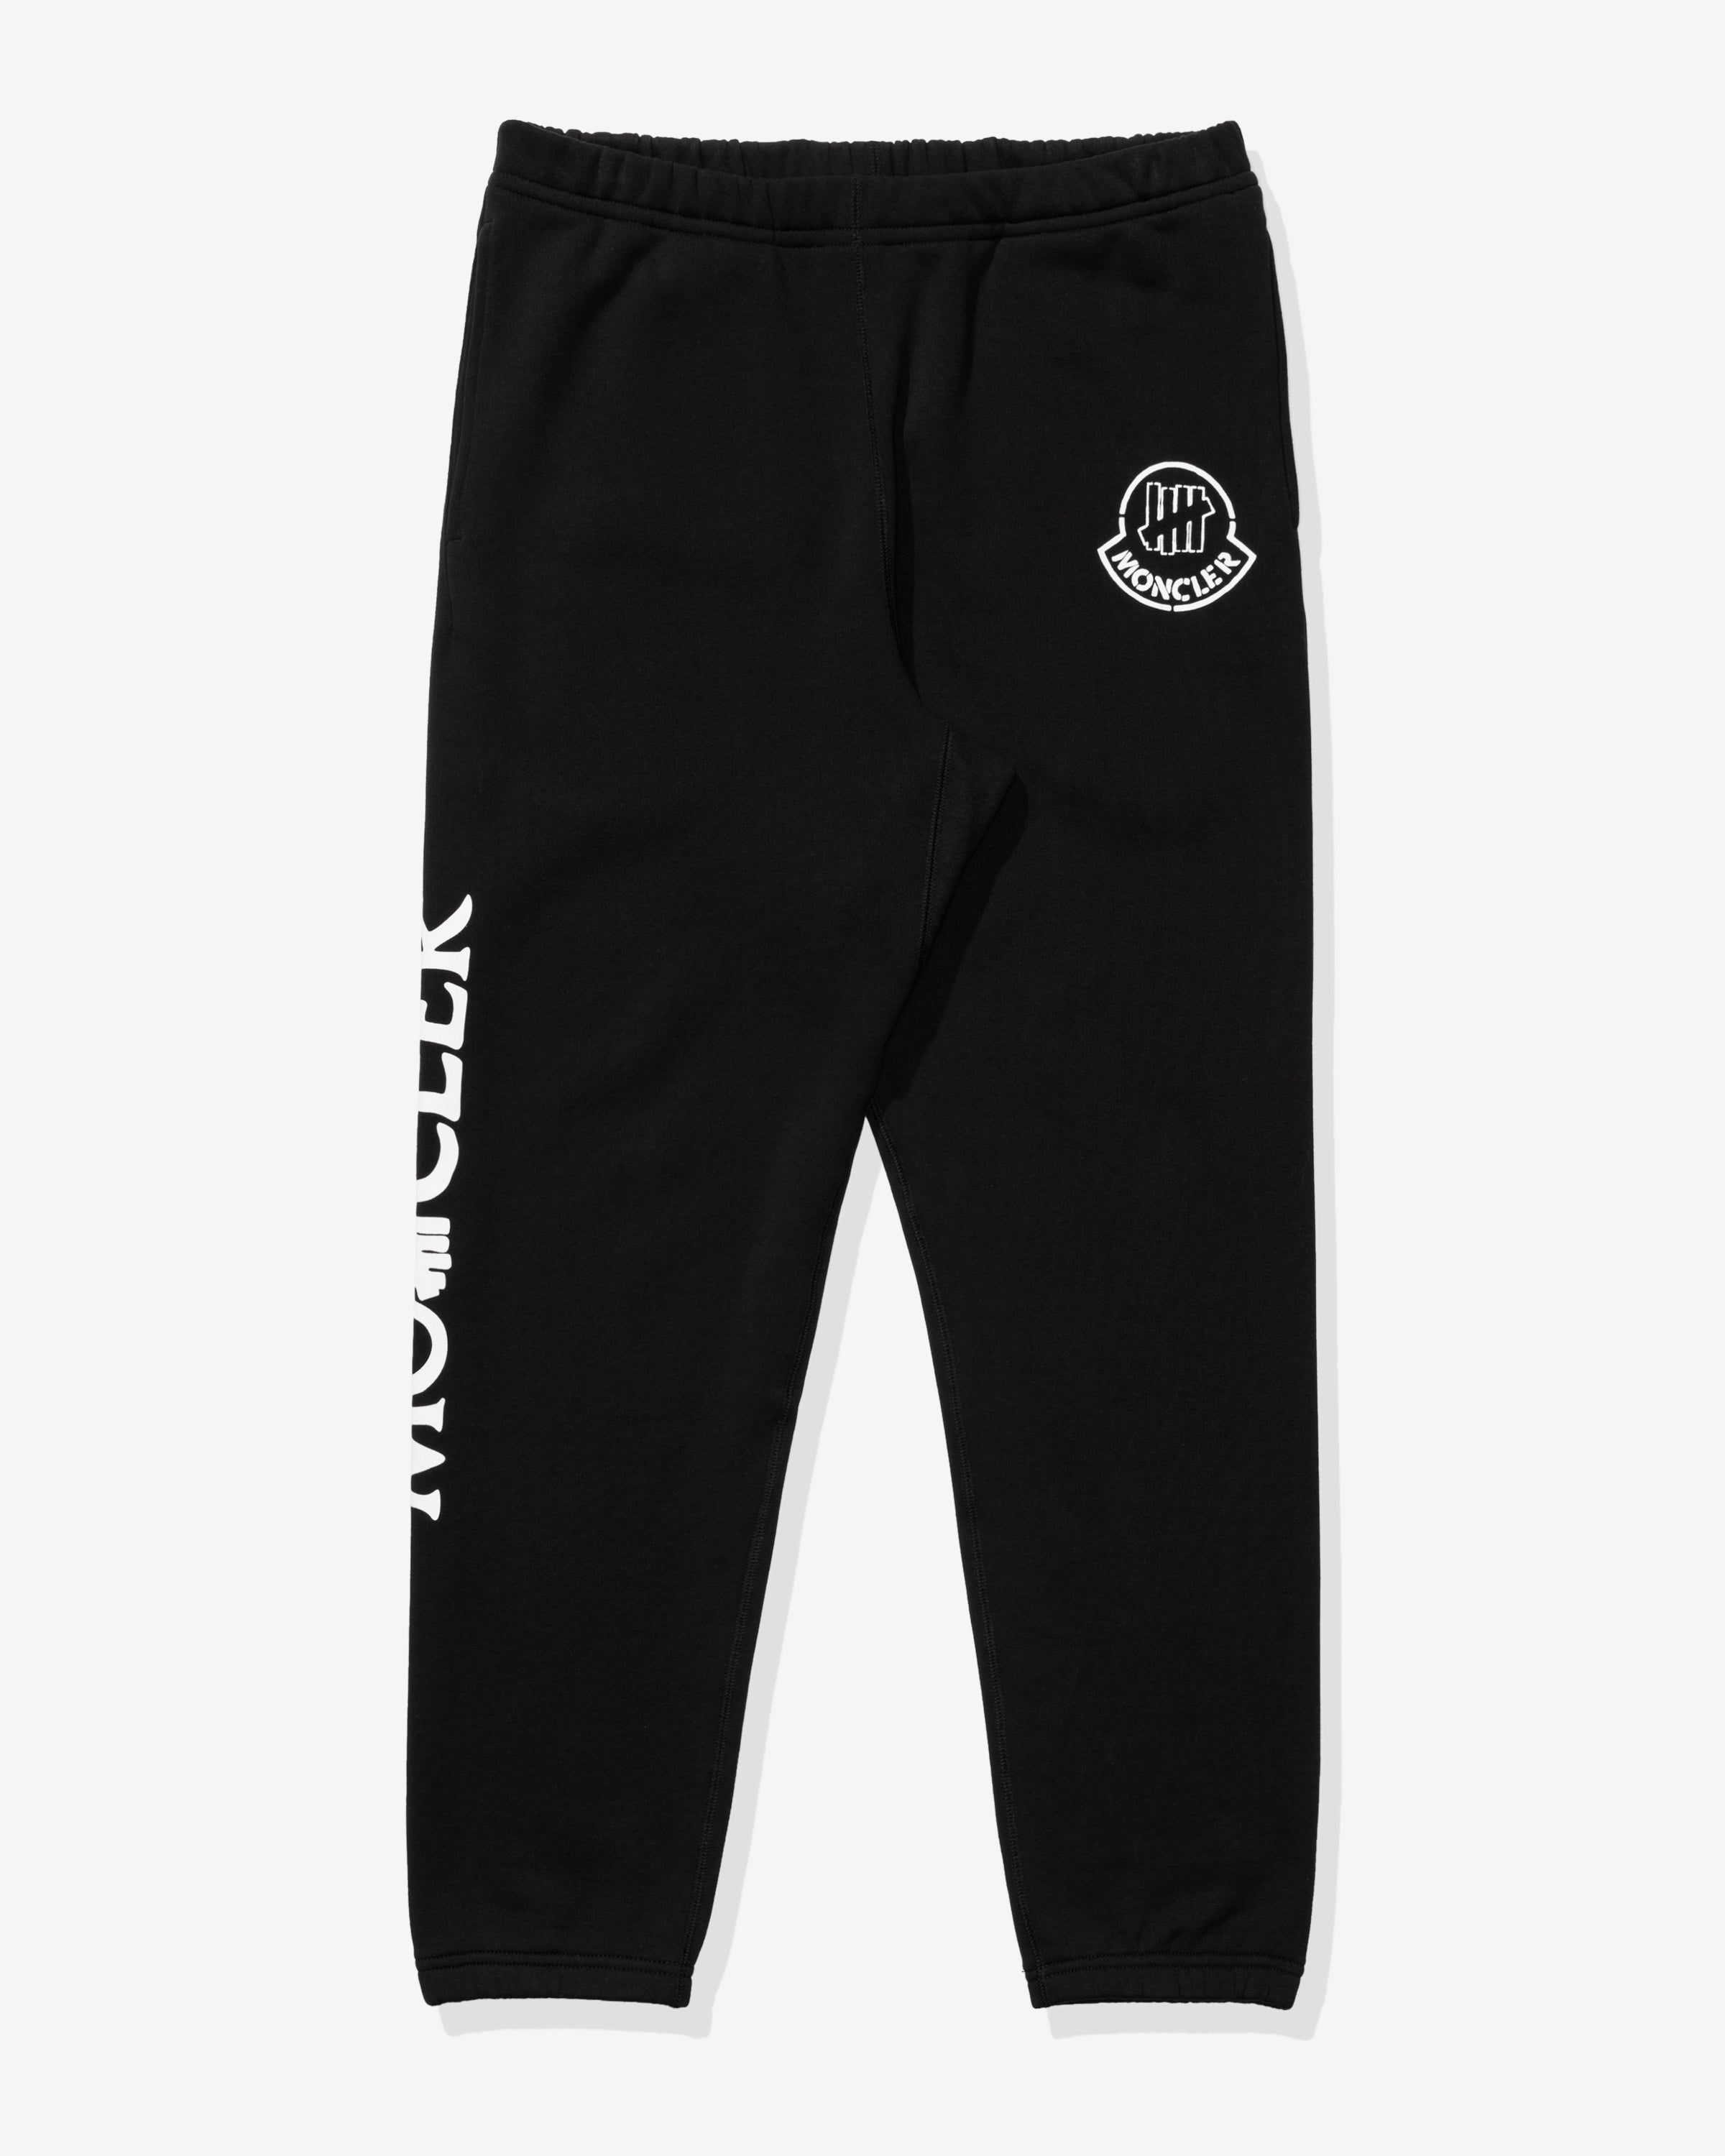 UNDEFEATED X MONCLER SWEAT BOTTOMS - BLACK